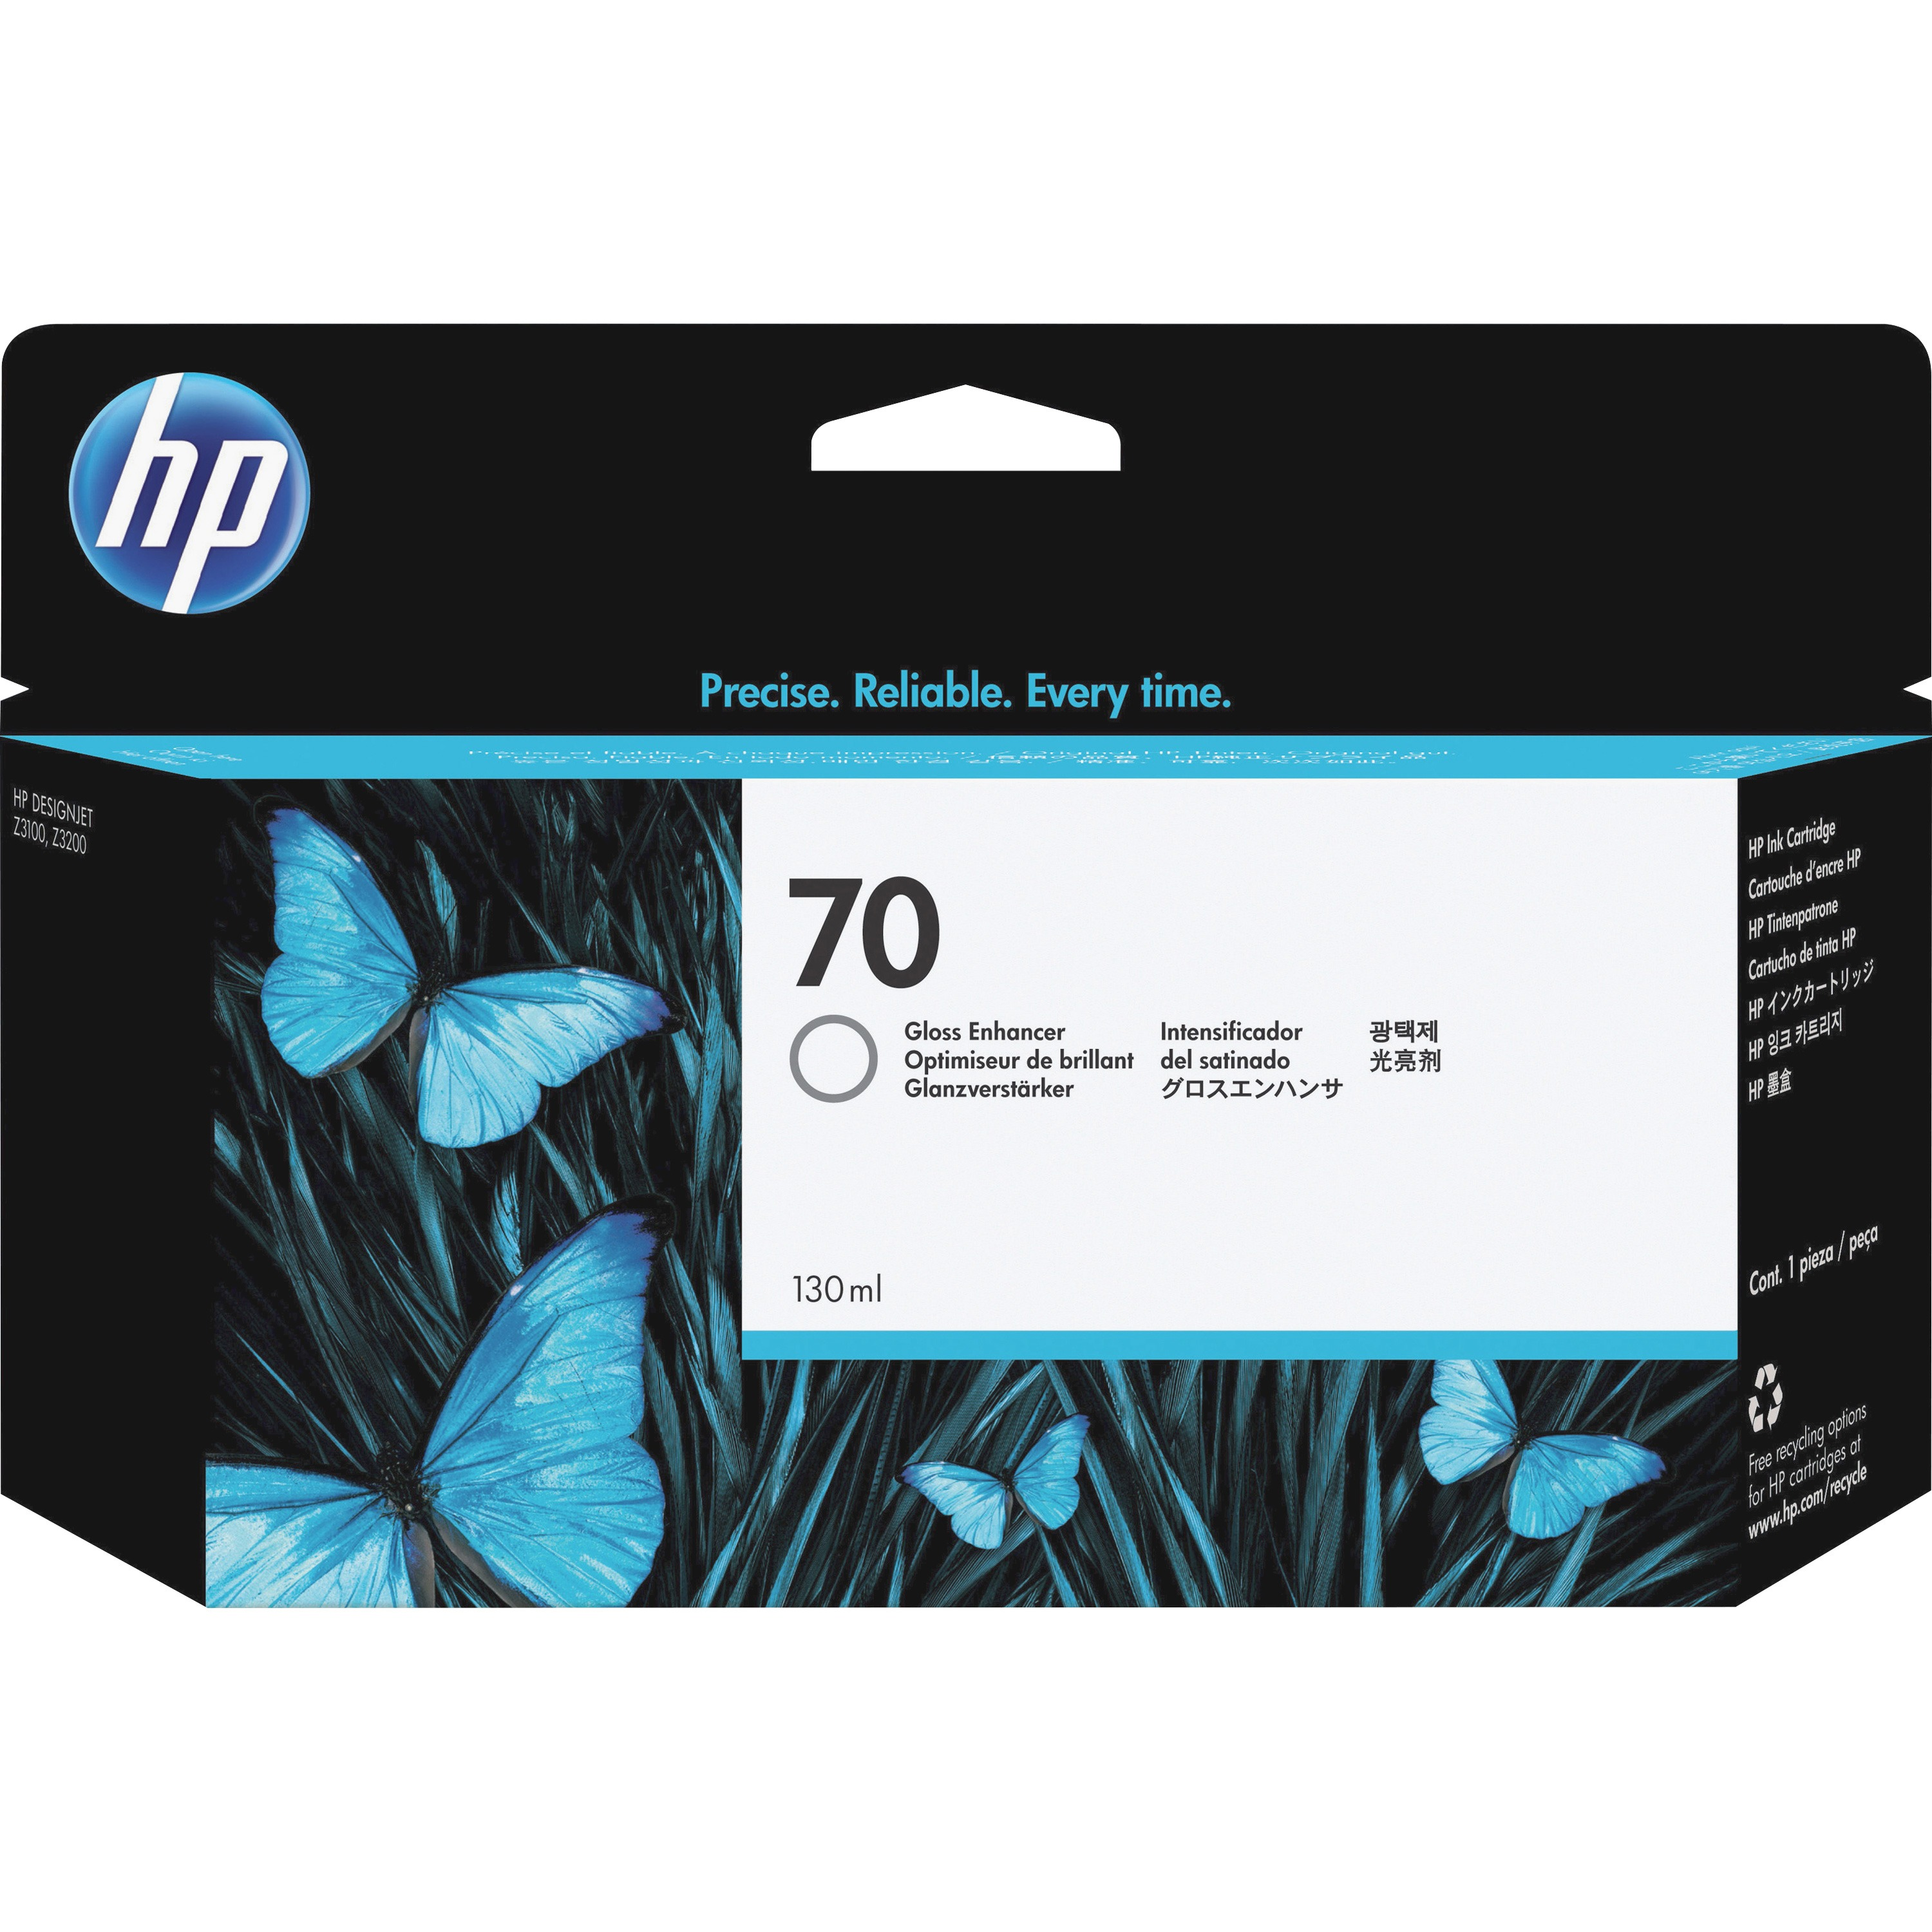 HP, HEWC9459A, C9450A/56A/57A/58A/59A Ink Cartridges, 1 Each